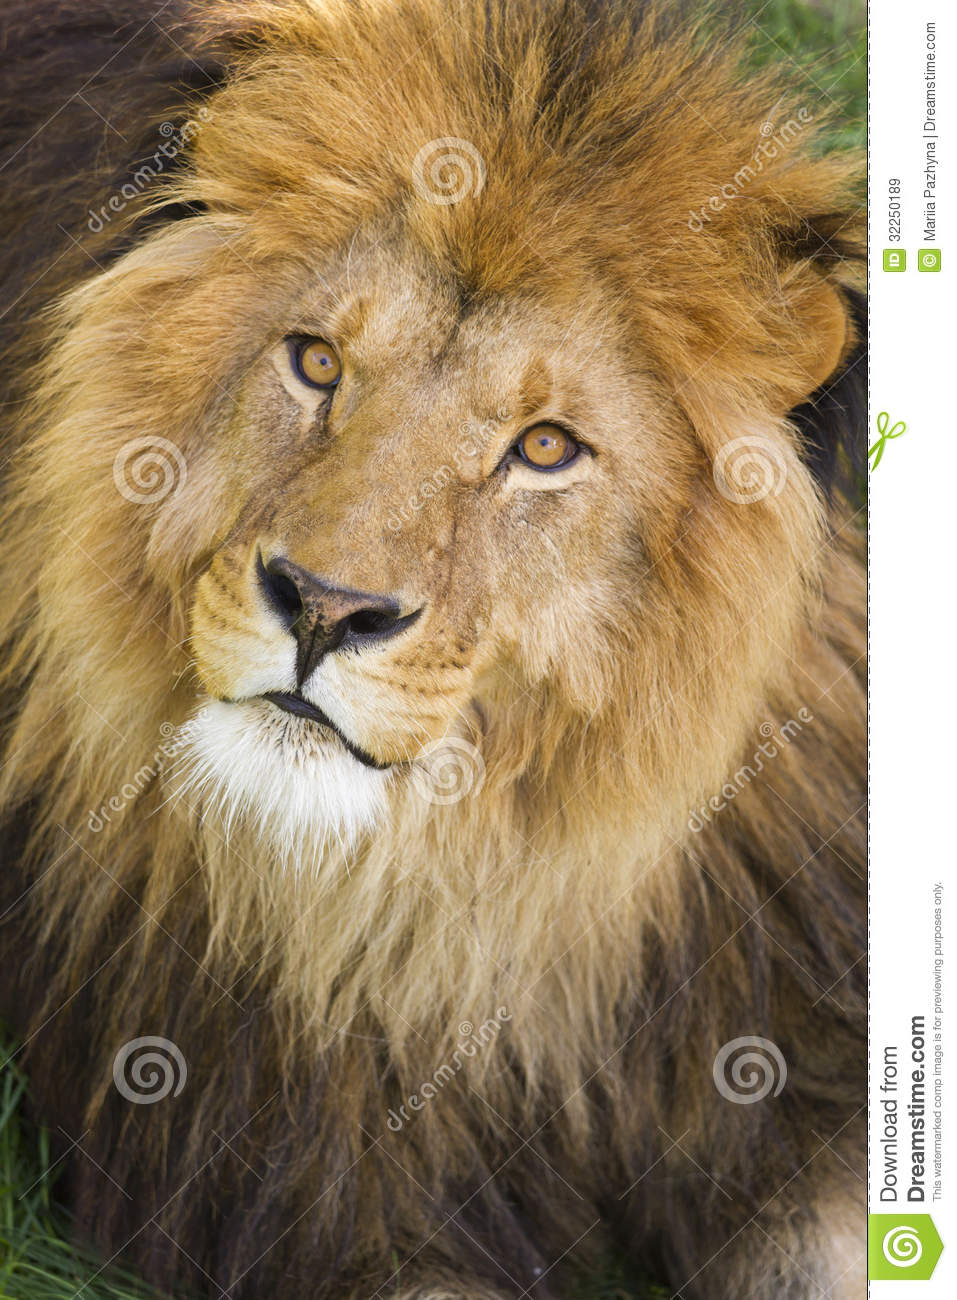 Male Lions Face Royalty Free Stock Images - Image: 32250189